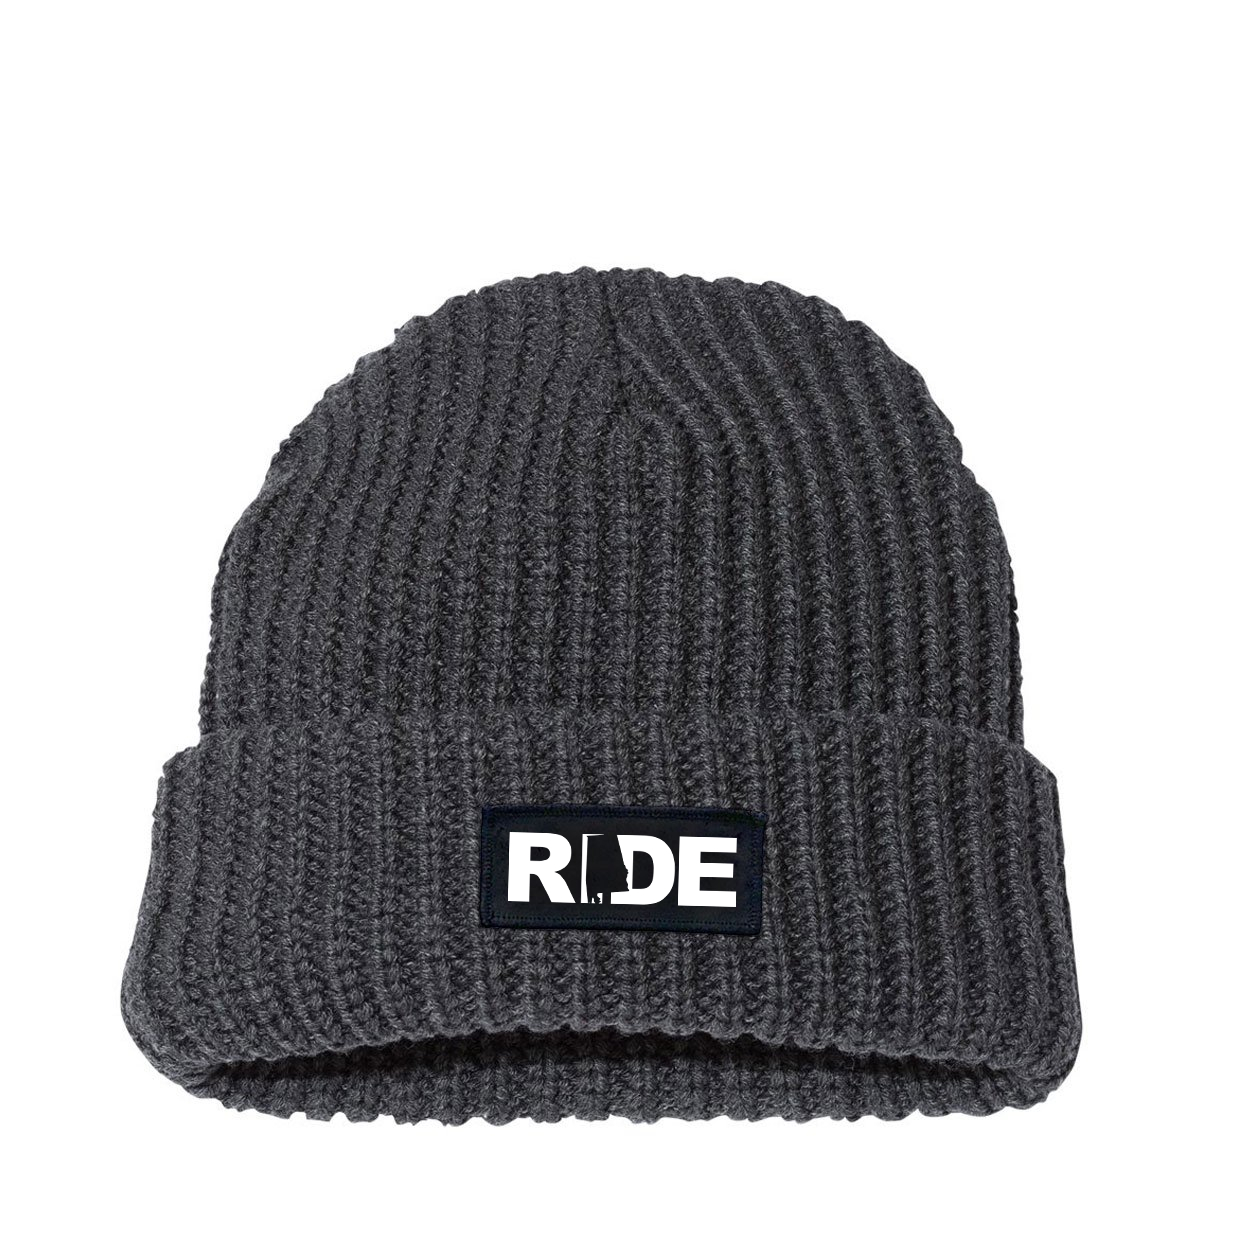 Ride Alabama Night Out Woven Patch Roll Up Jumbo Chunky Knit Beanie Charcoal (White Logo)